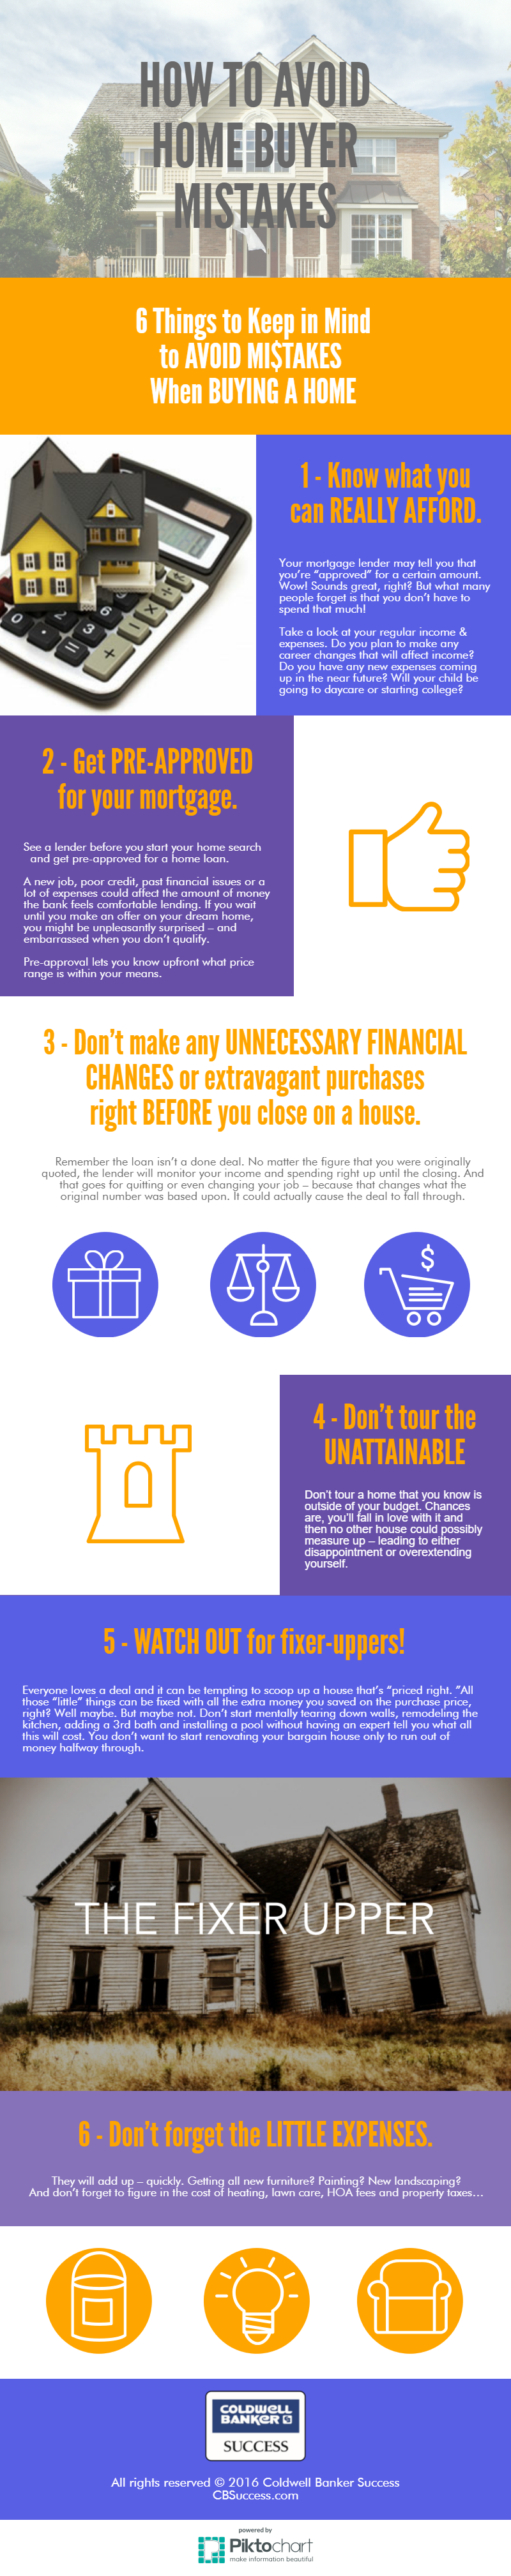 6 Things to keep in mind to avoid mistakes when buying a home.